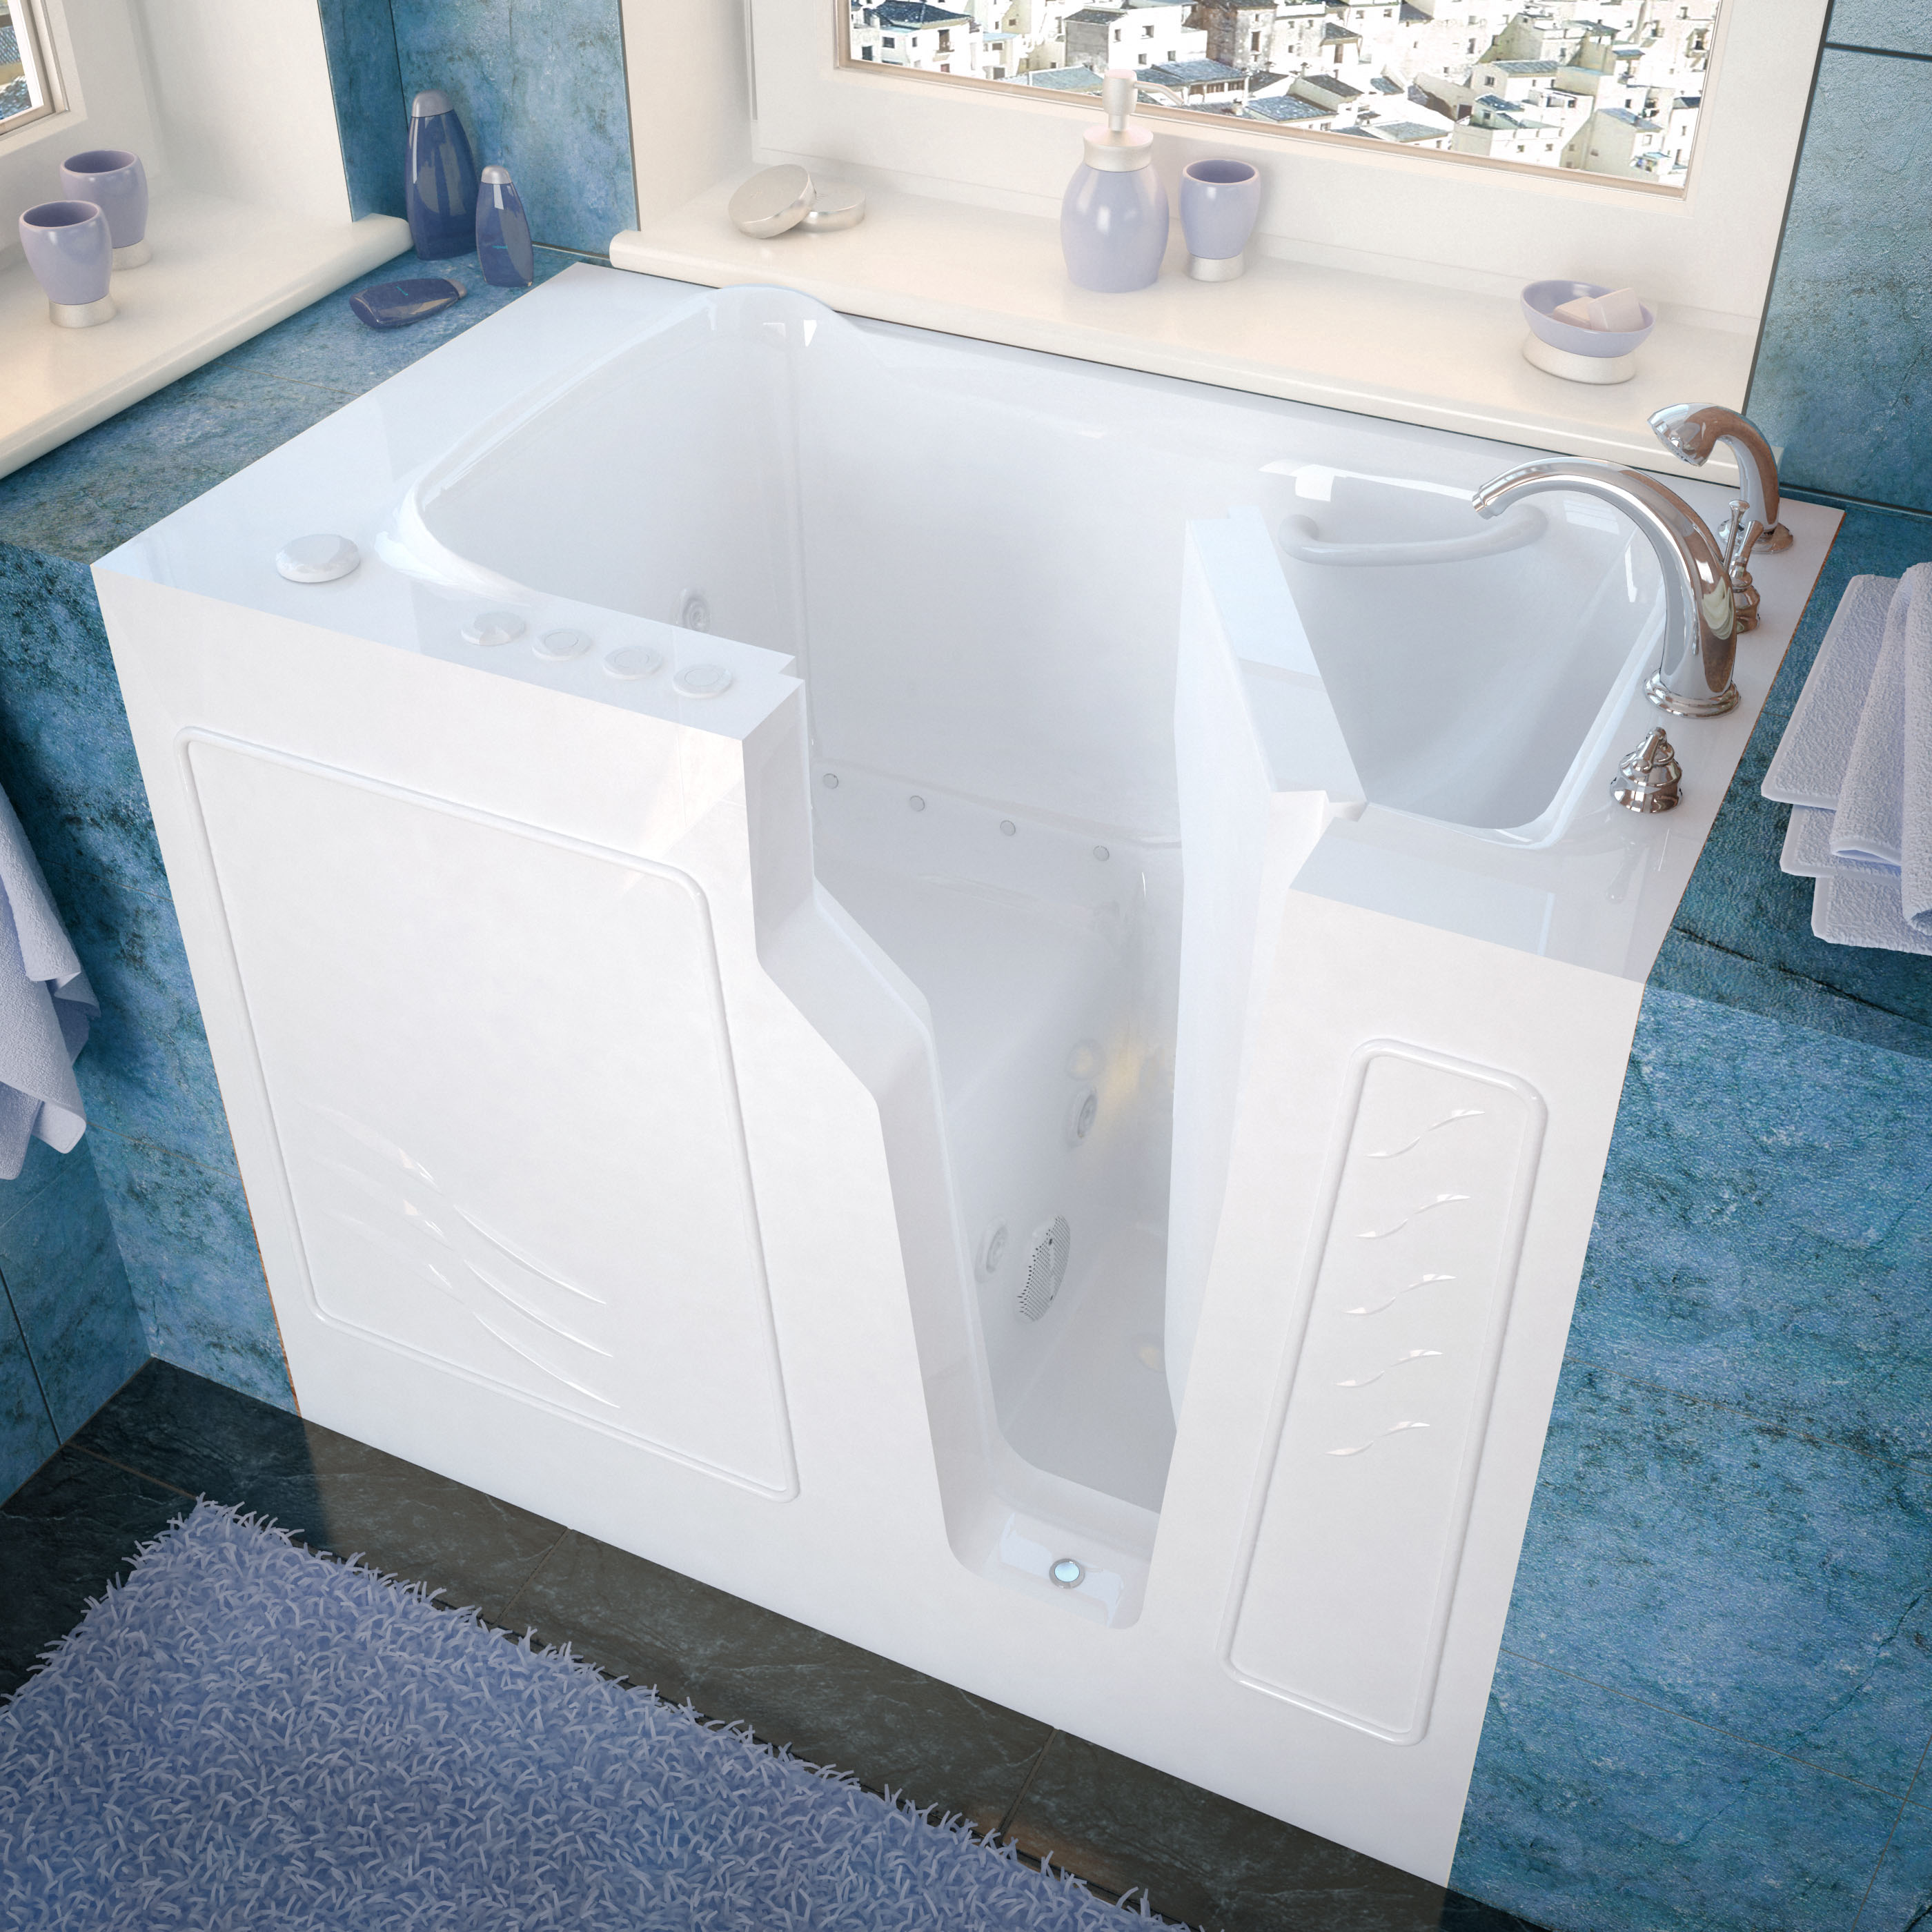 26x46 Right Drain White Whirlpool & Air Jetted Walk-In Bathtub